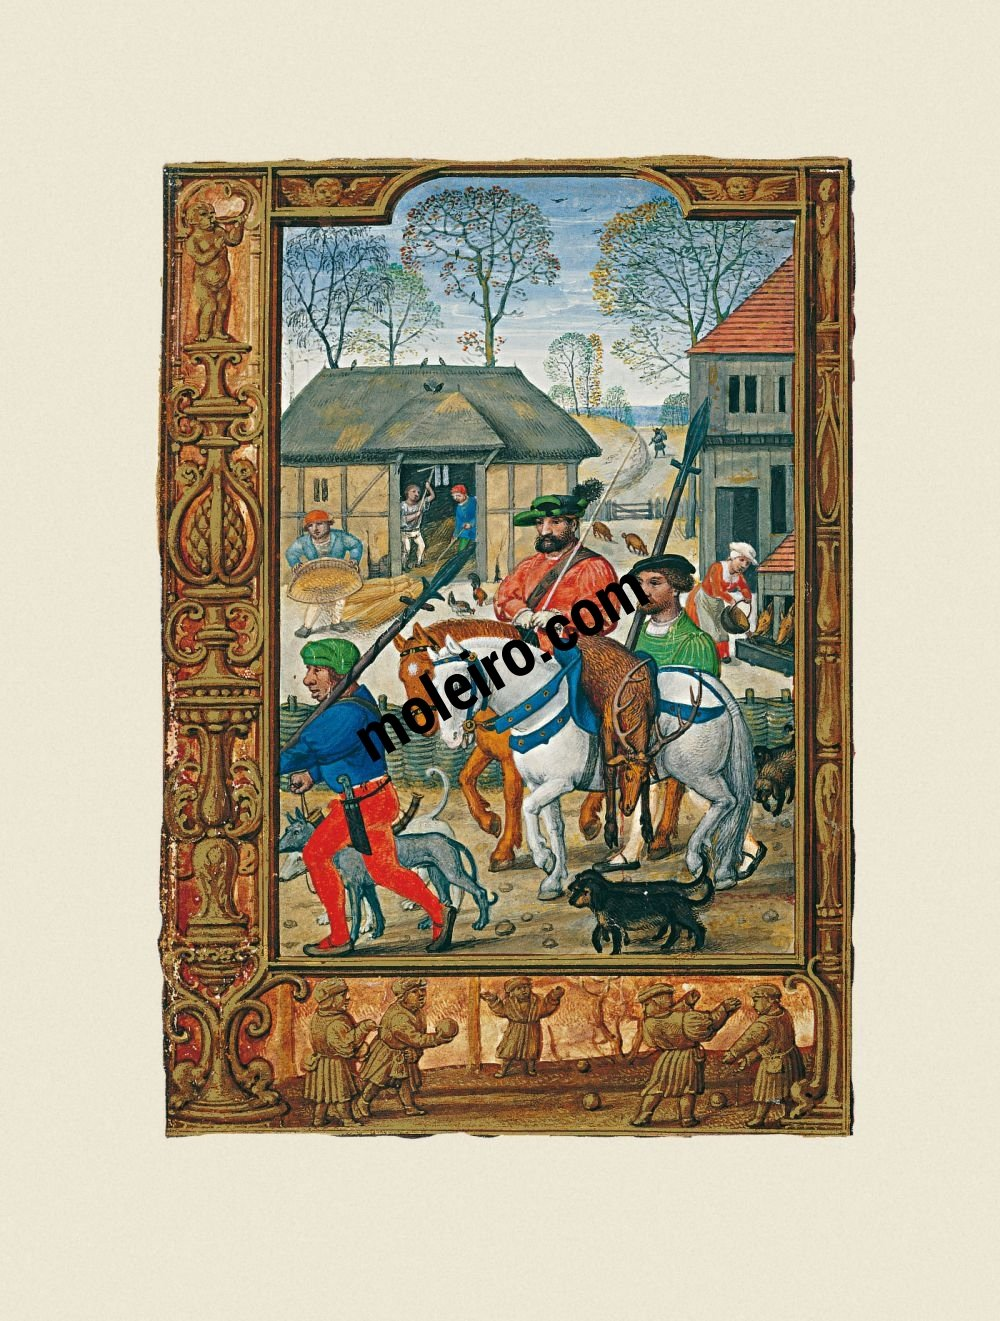 The Golf Book (Book of Hours) f. 28v, November, hunting